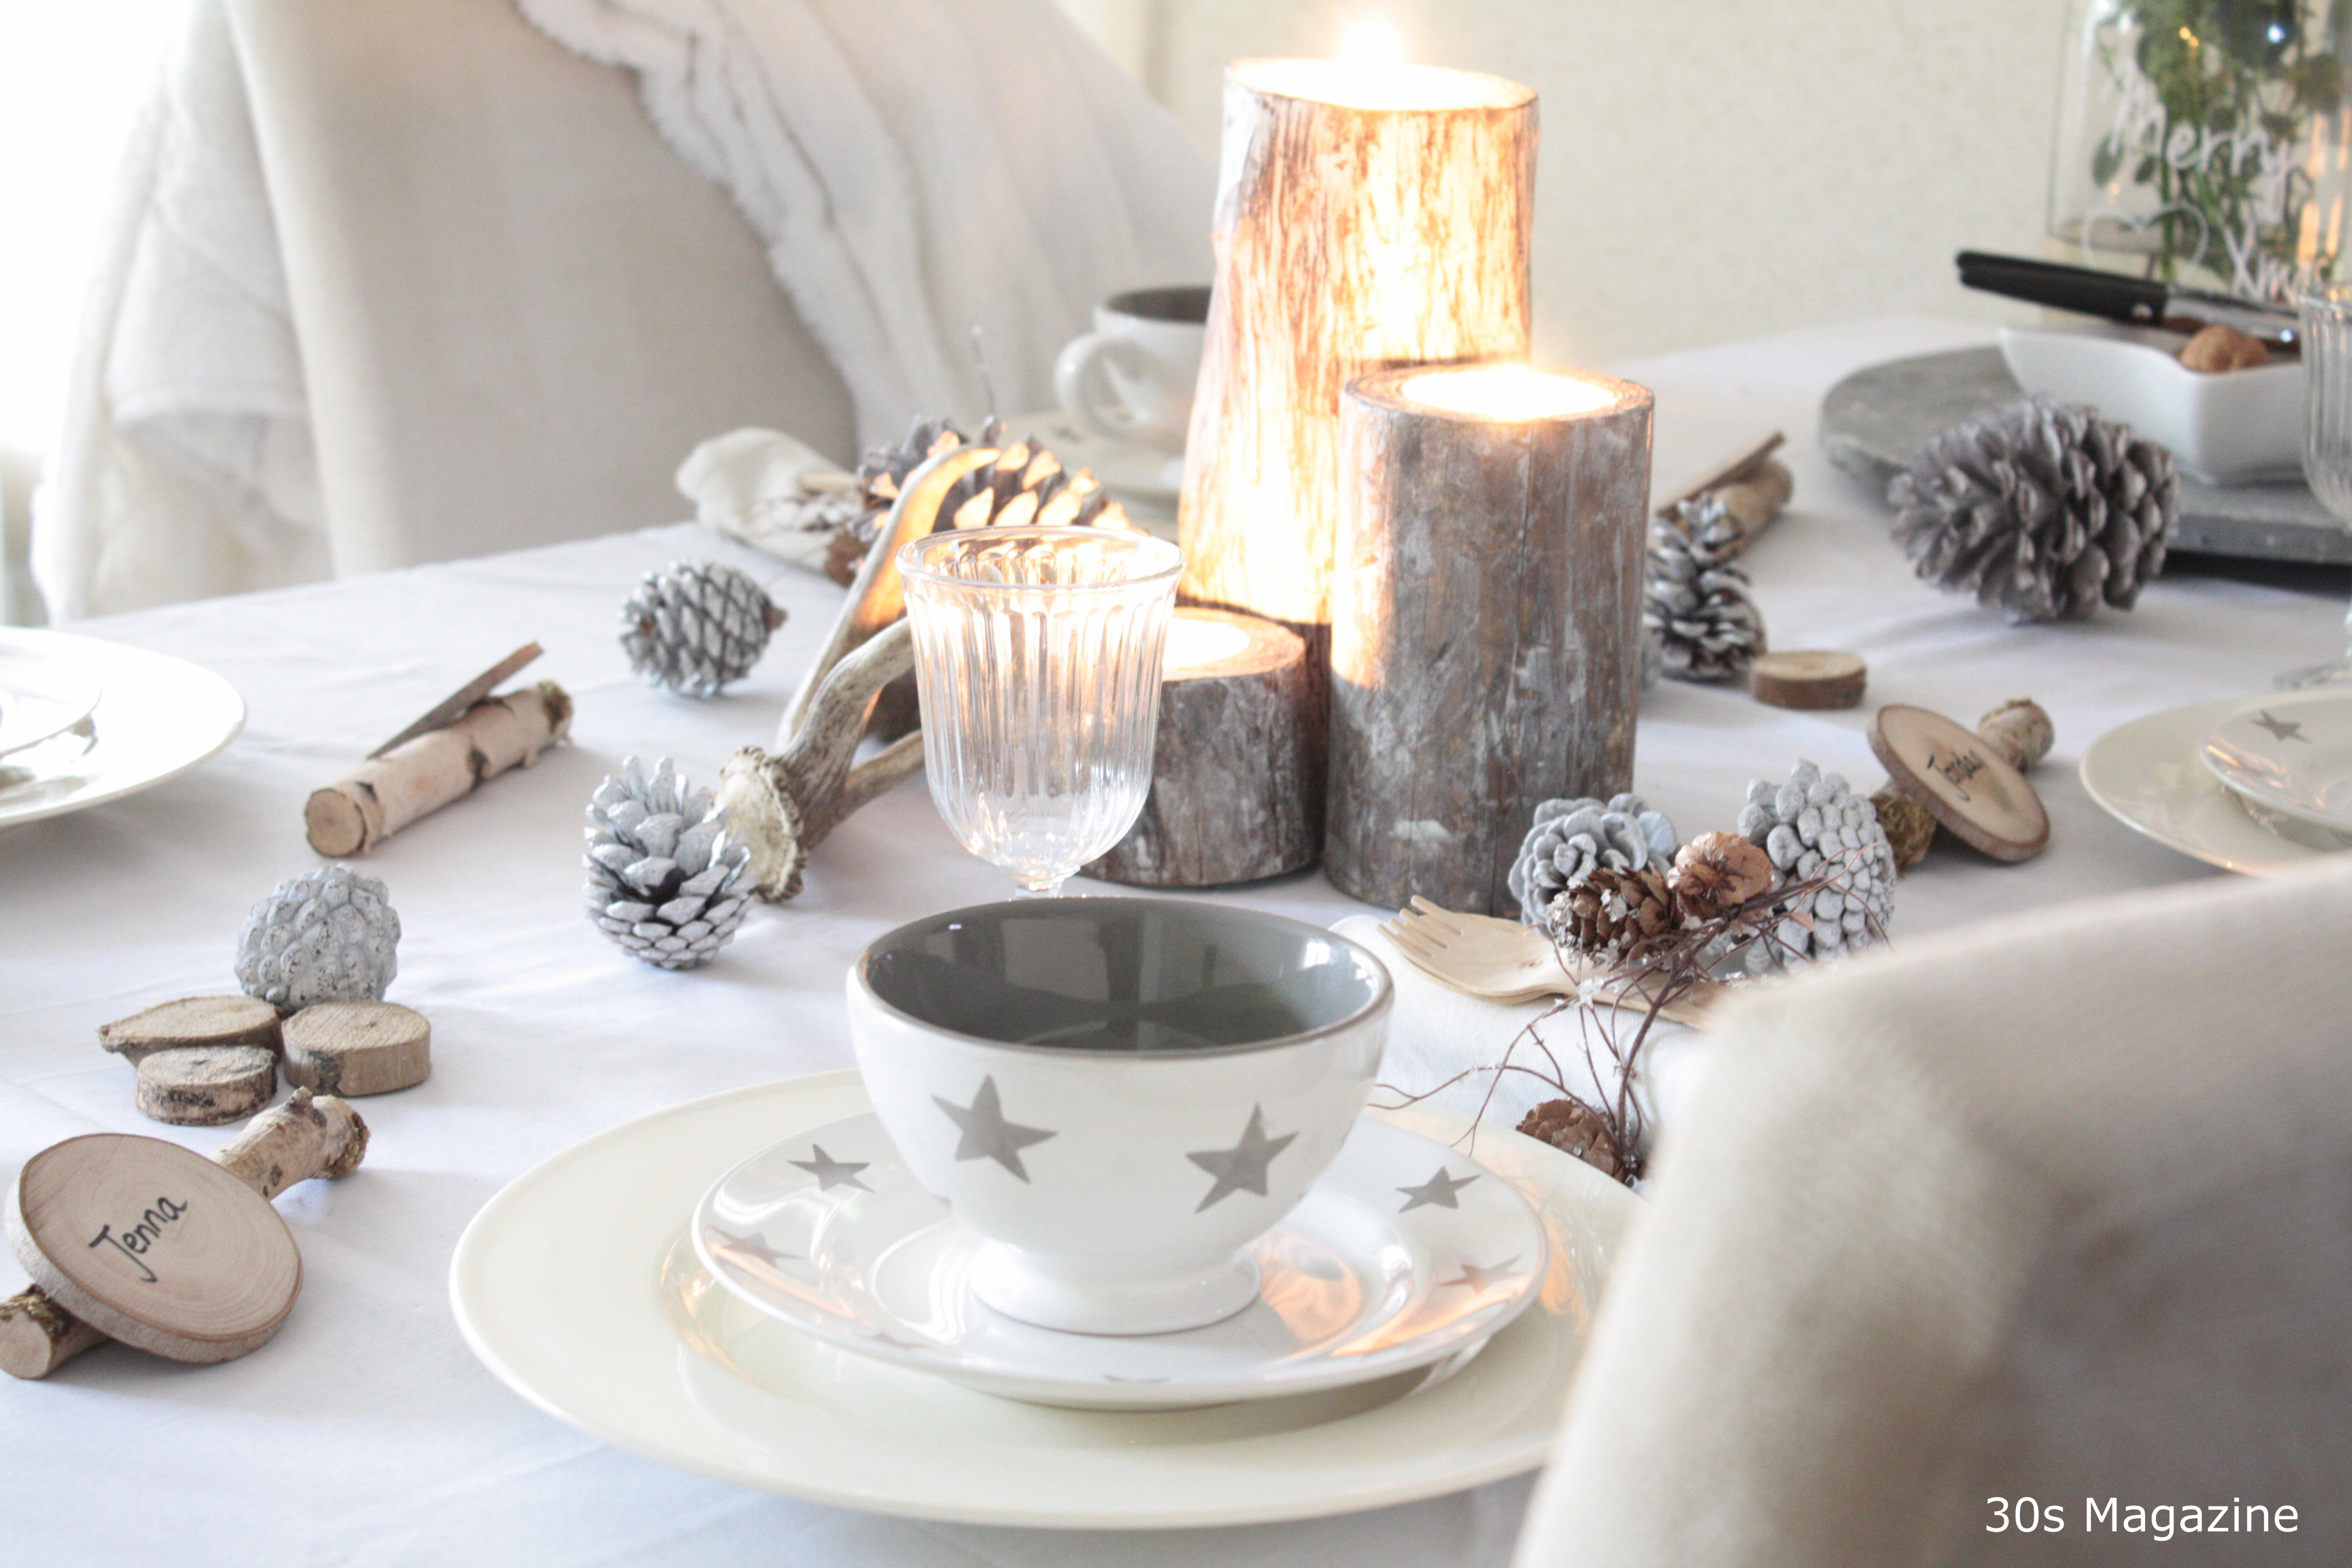 A Rustic-chic Christmas Table Setting – 30s Magazine